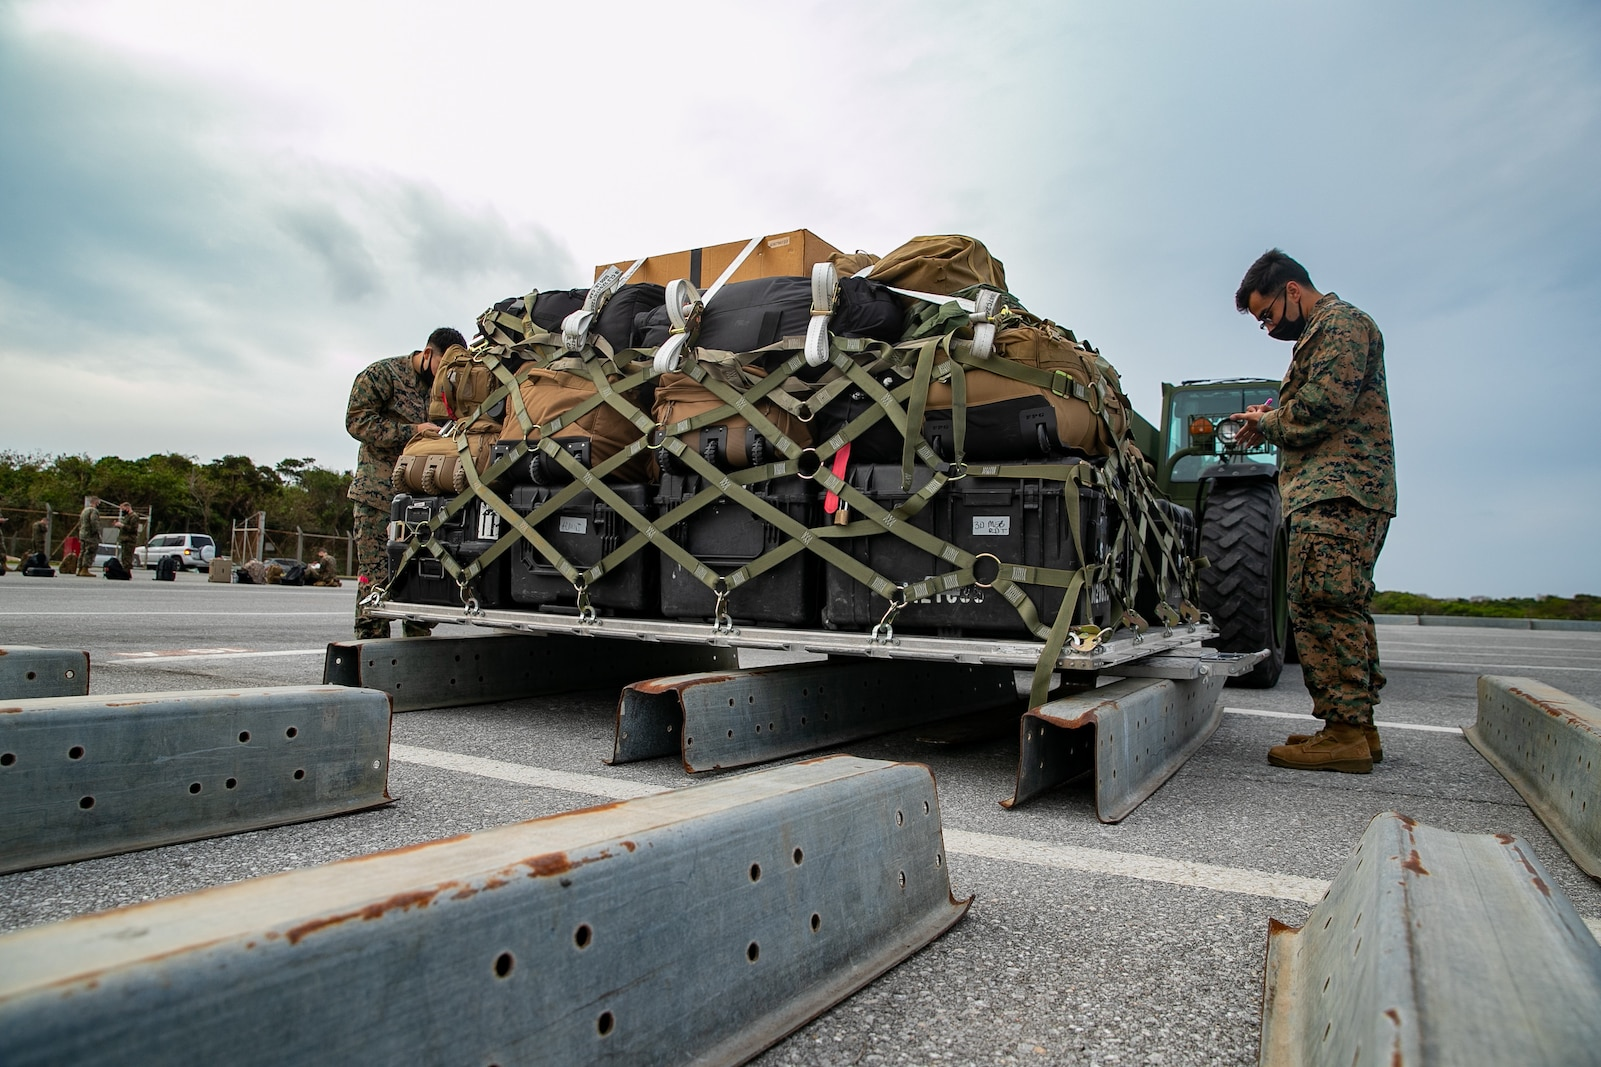 3rd MEB practices distributed operations as part of the Marine Corps' only forward-deployed force.